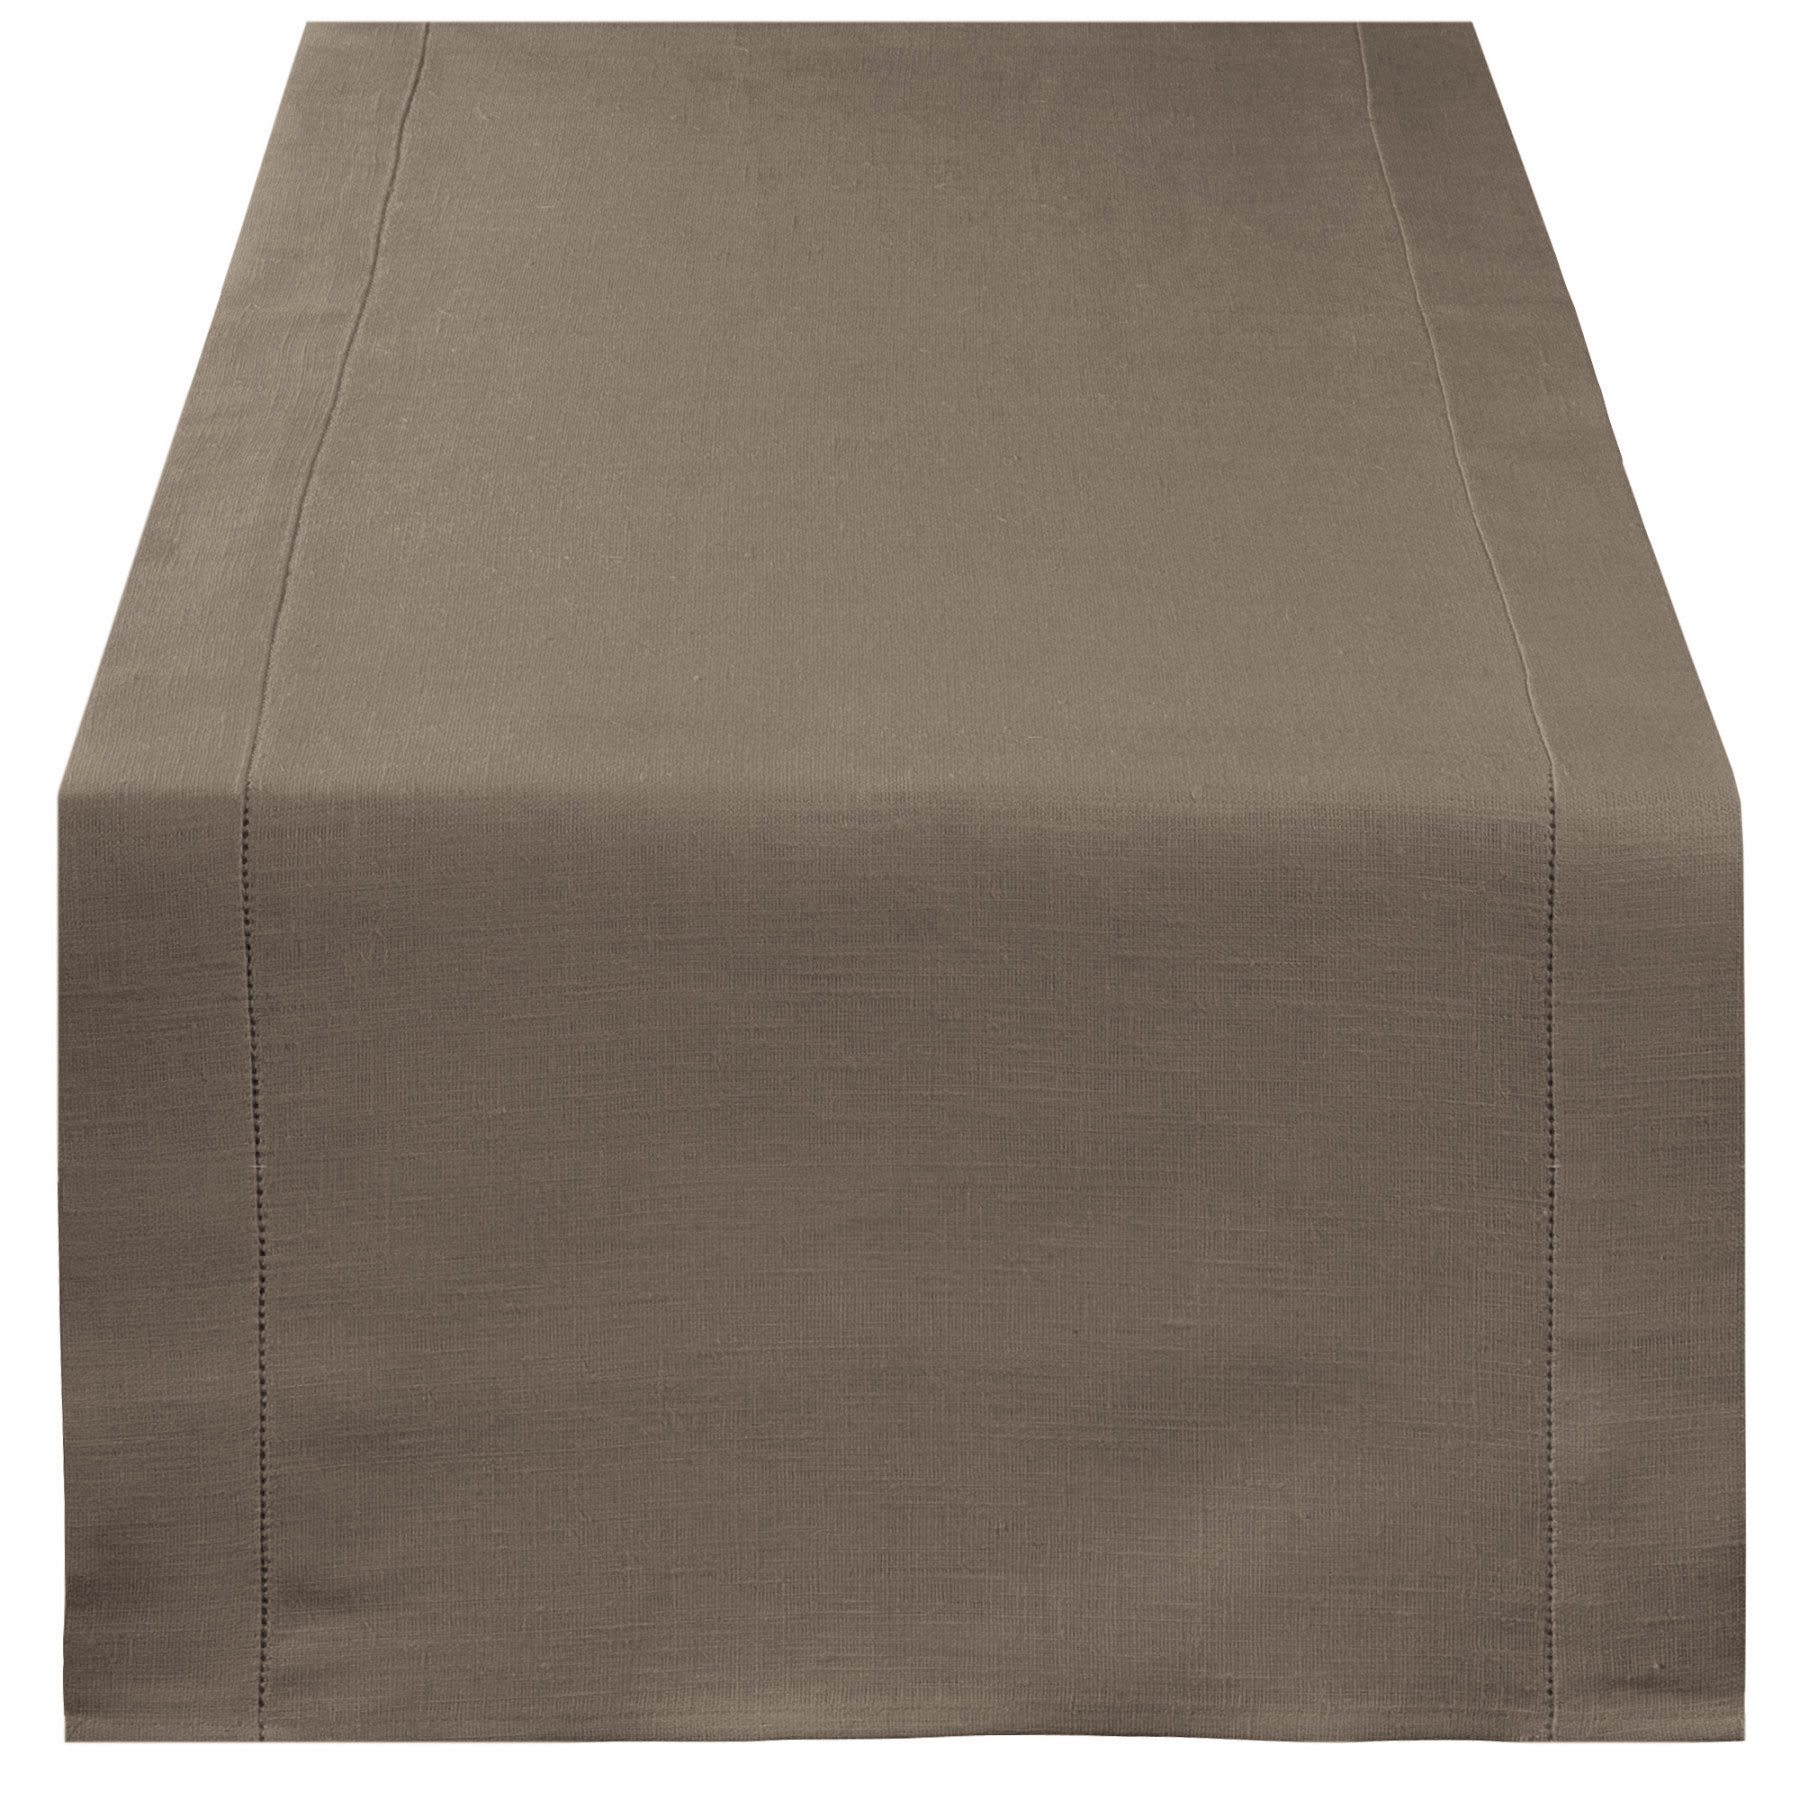 TABLE RUNNER <br />taupe